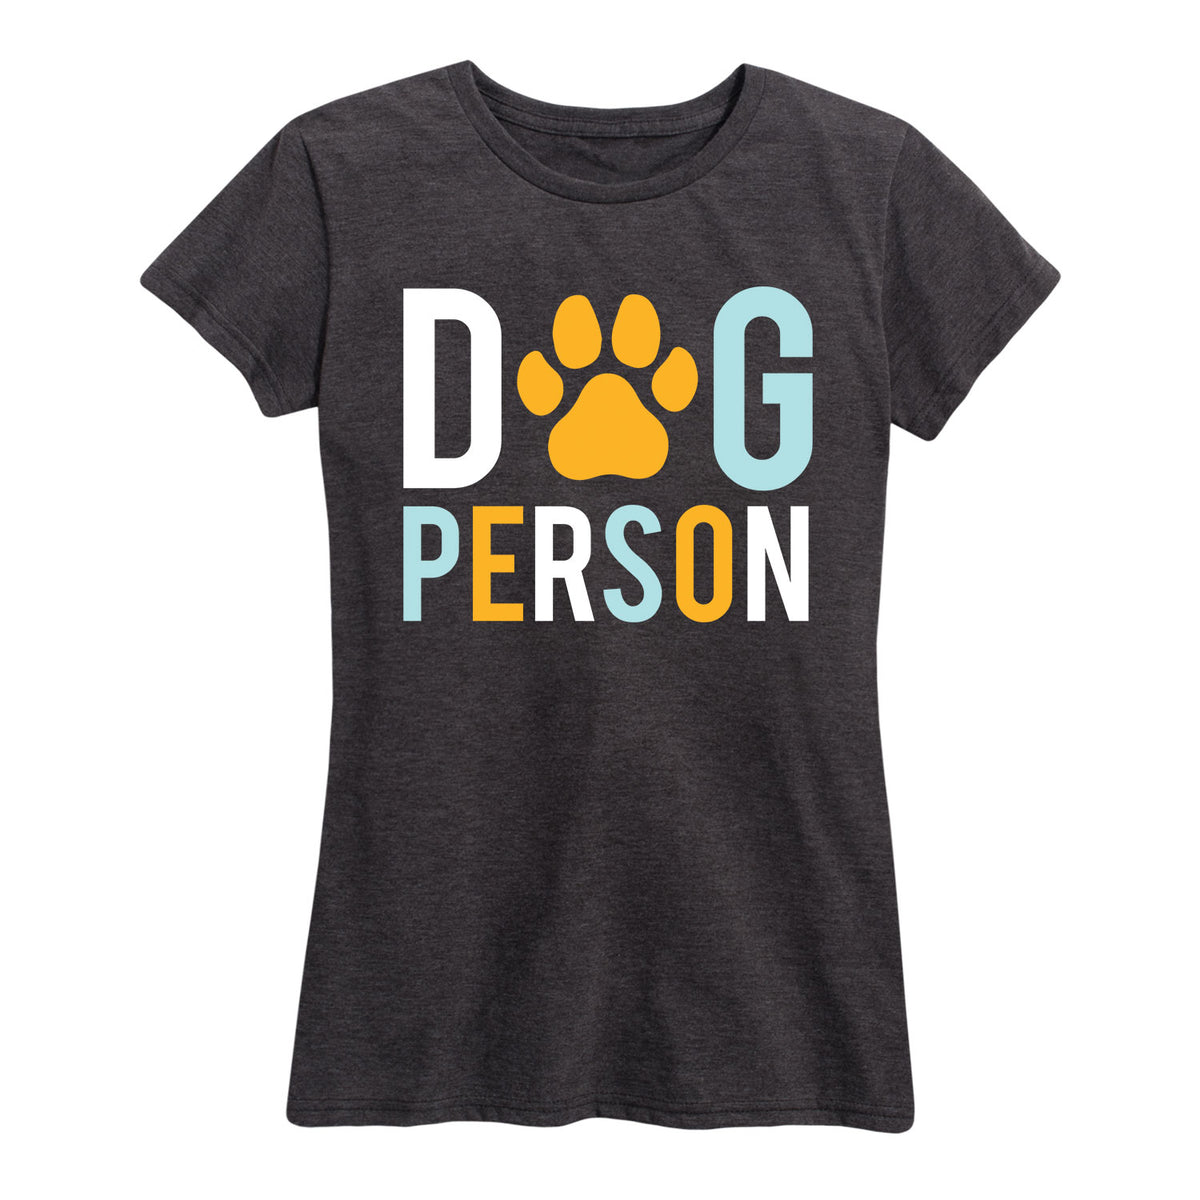 Dog Person - Women's Short Sleeve T-Shirt